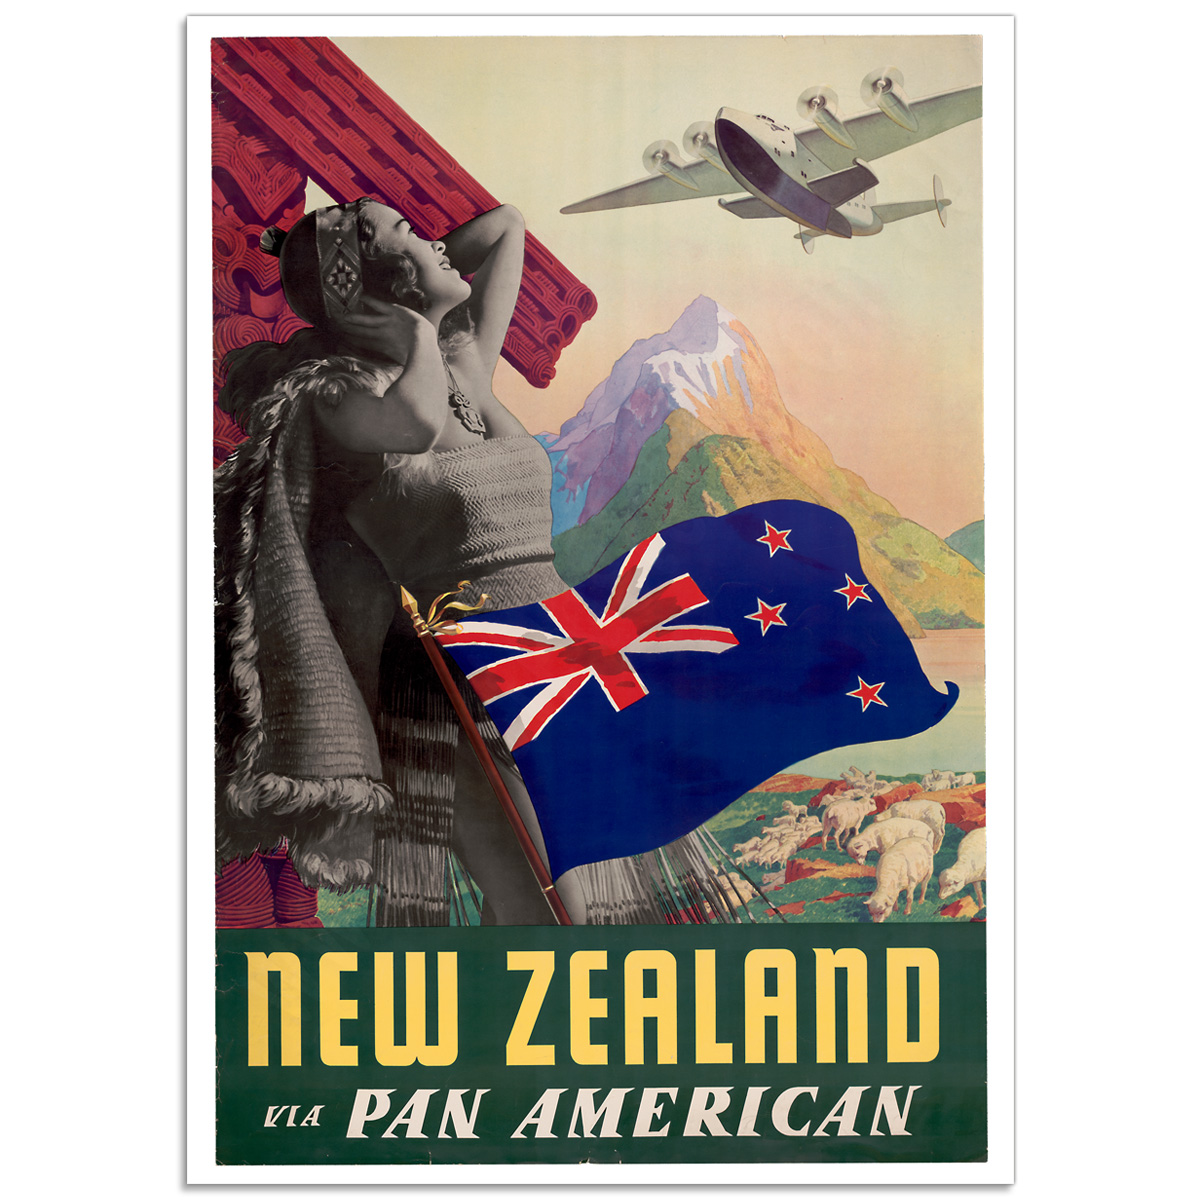 Vintage Travel Poster - New Zealand via Pan American